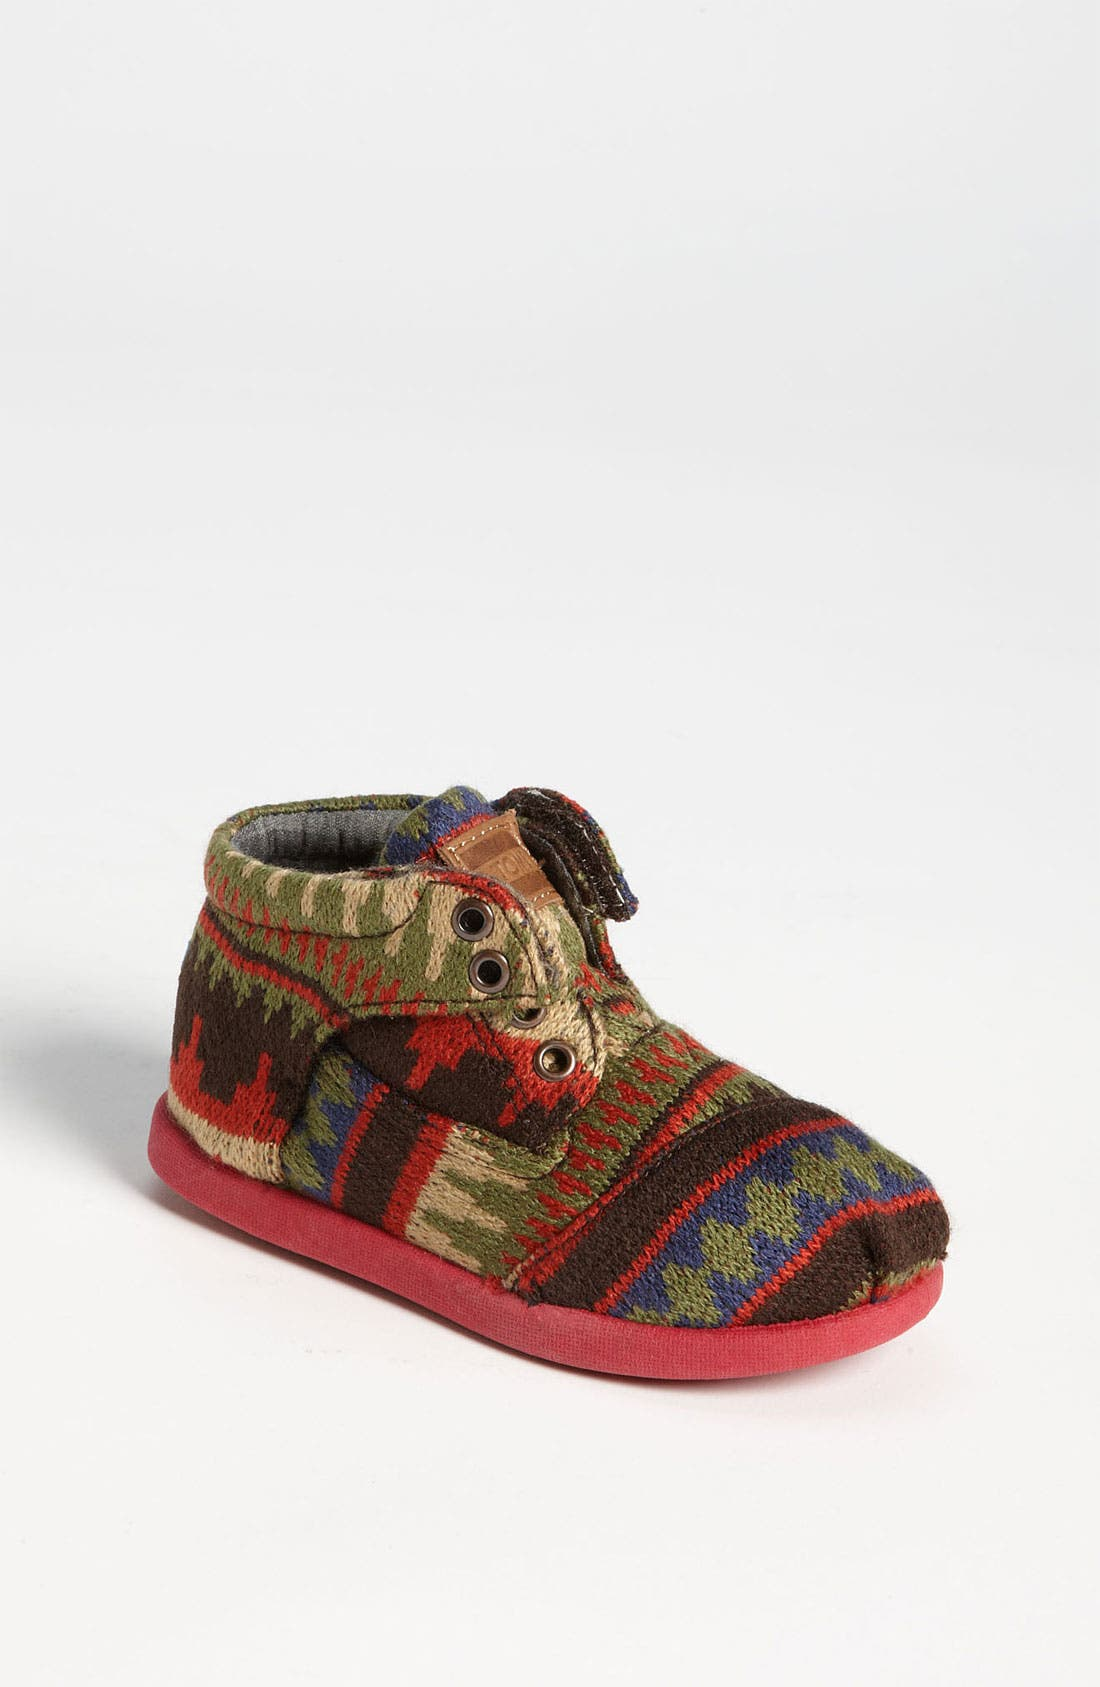 Alternate Image 1 Selected - TOMS 'Botas Tiny - Kilim' Boot (Baby, Walker & Toddler)